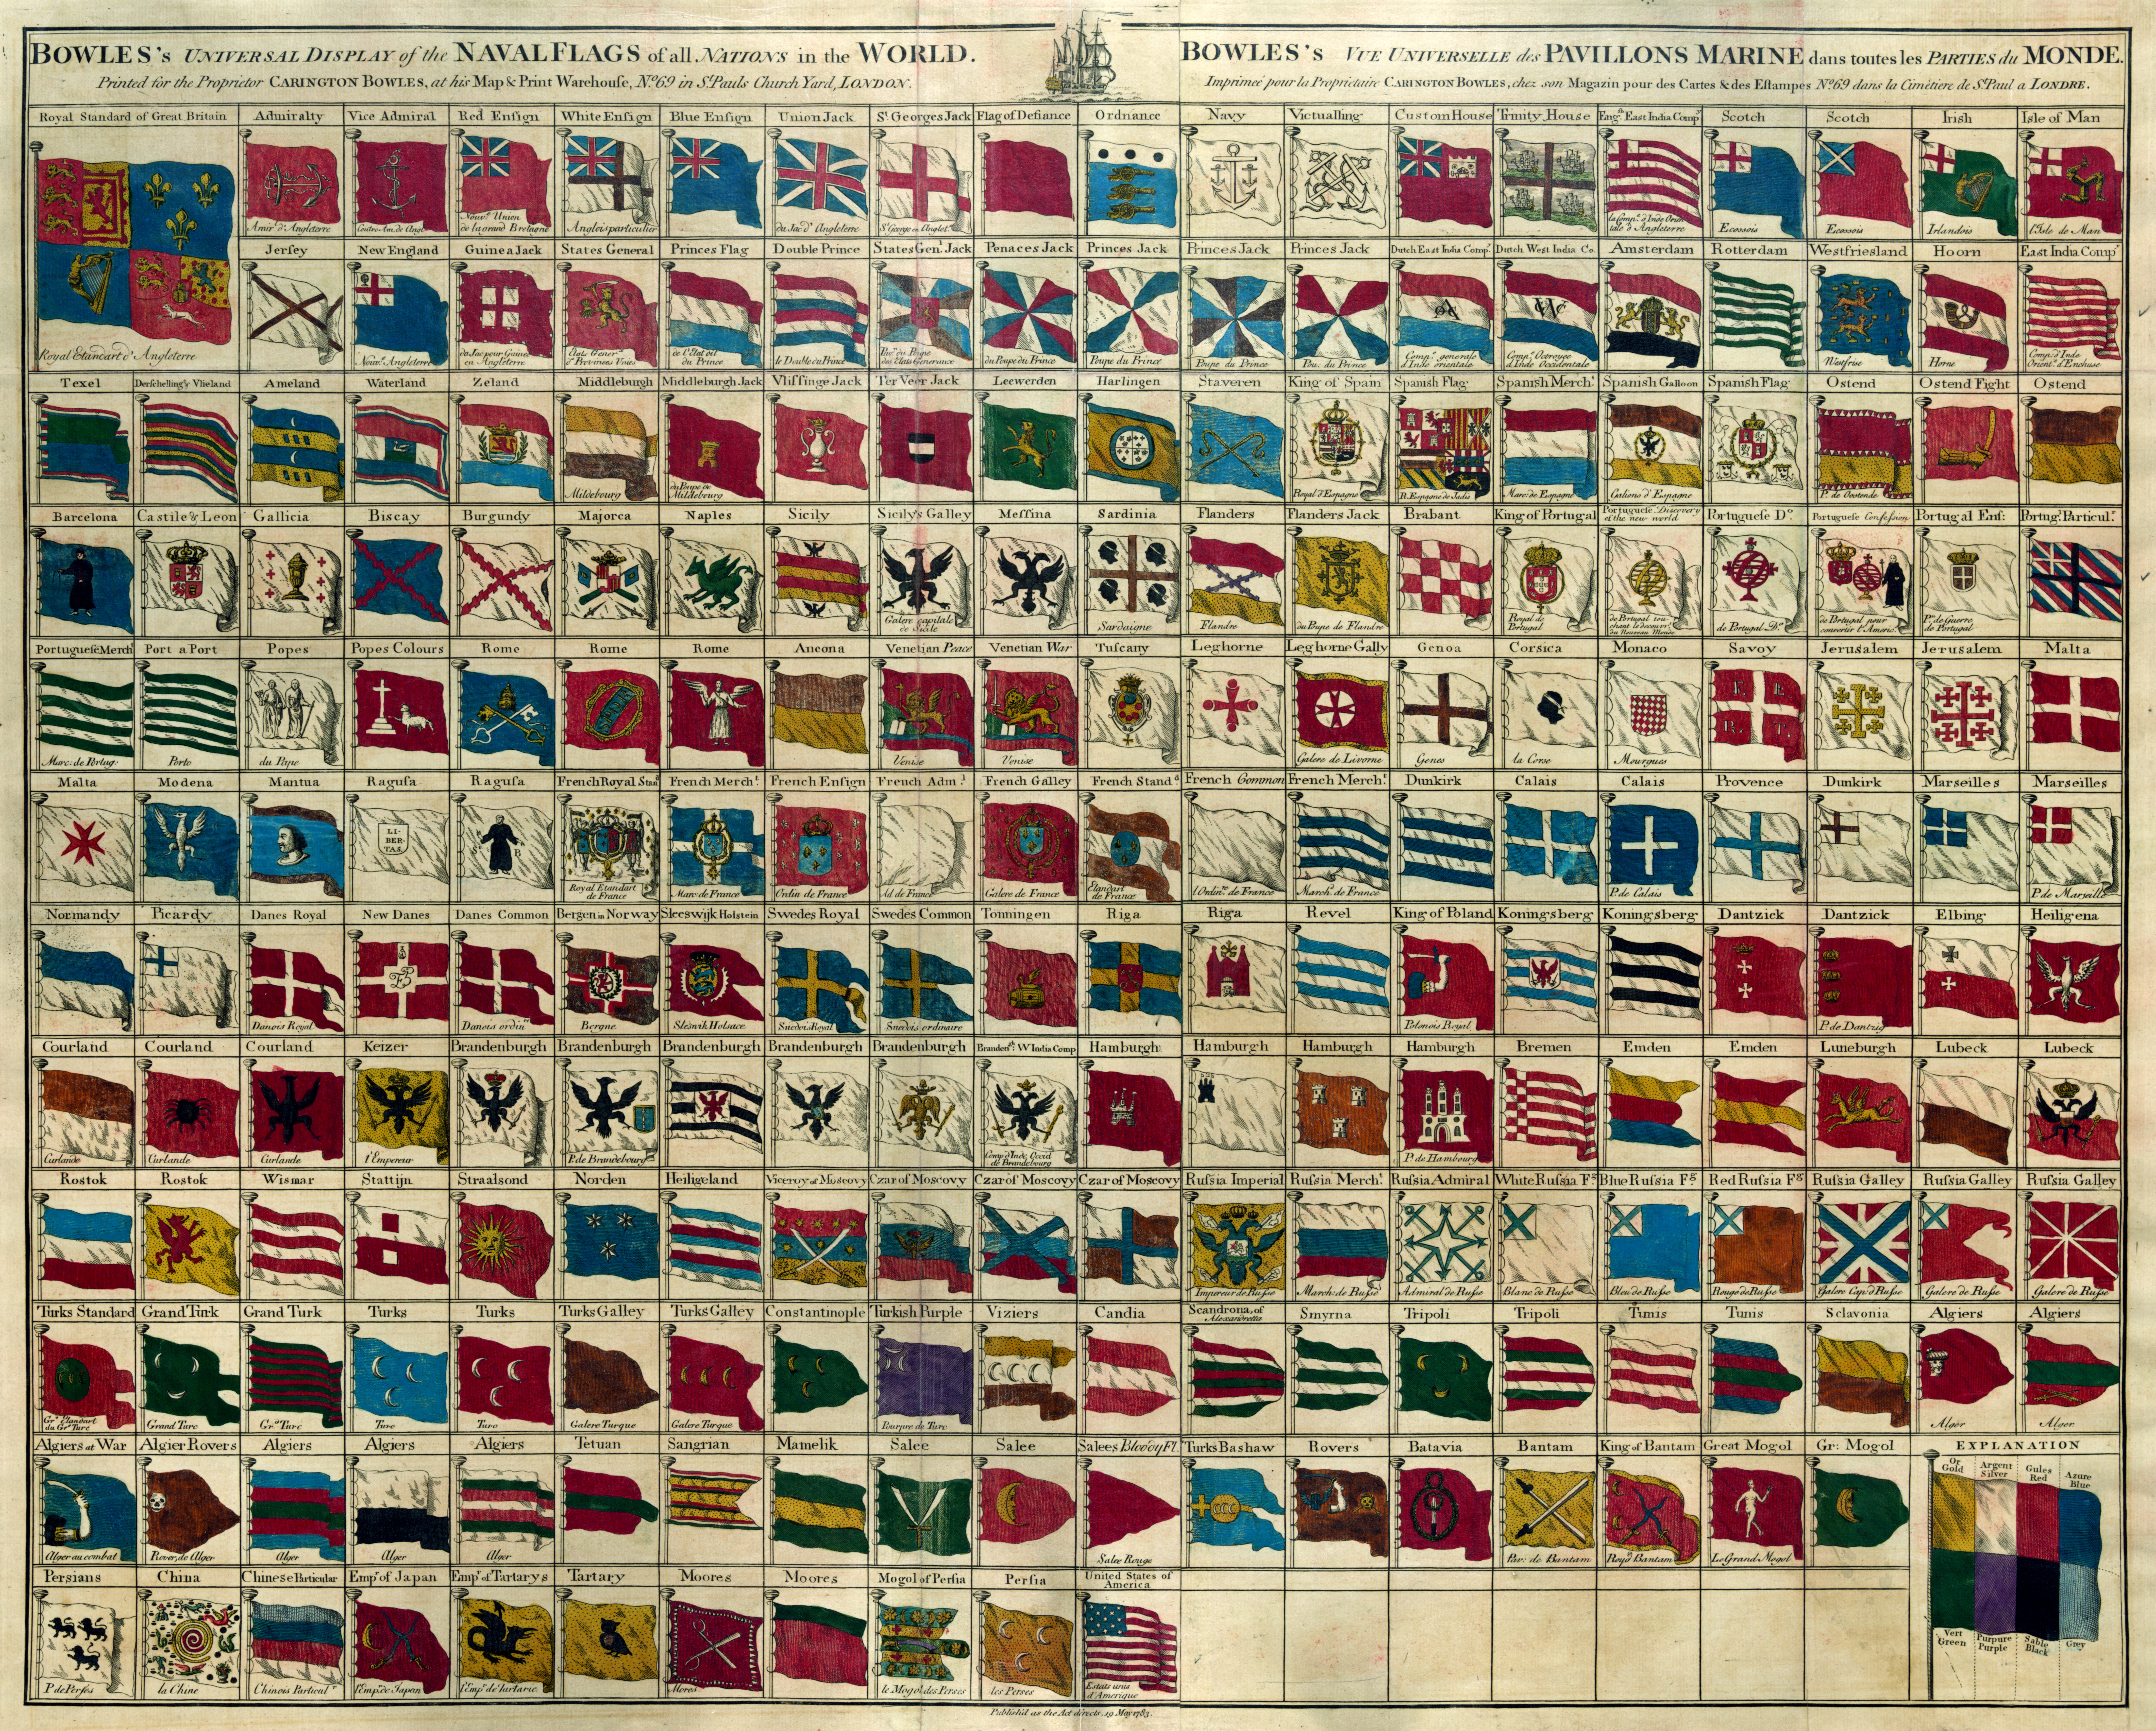 File:Bowles's naval flags of the world, 1783.jpg